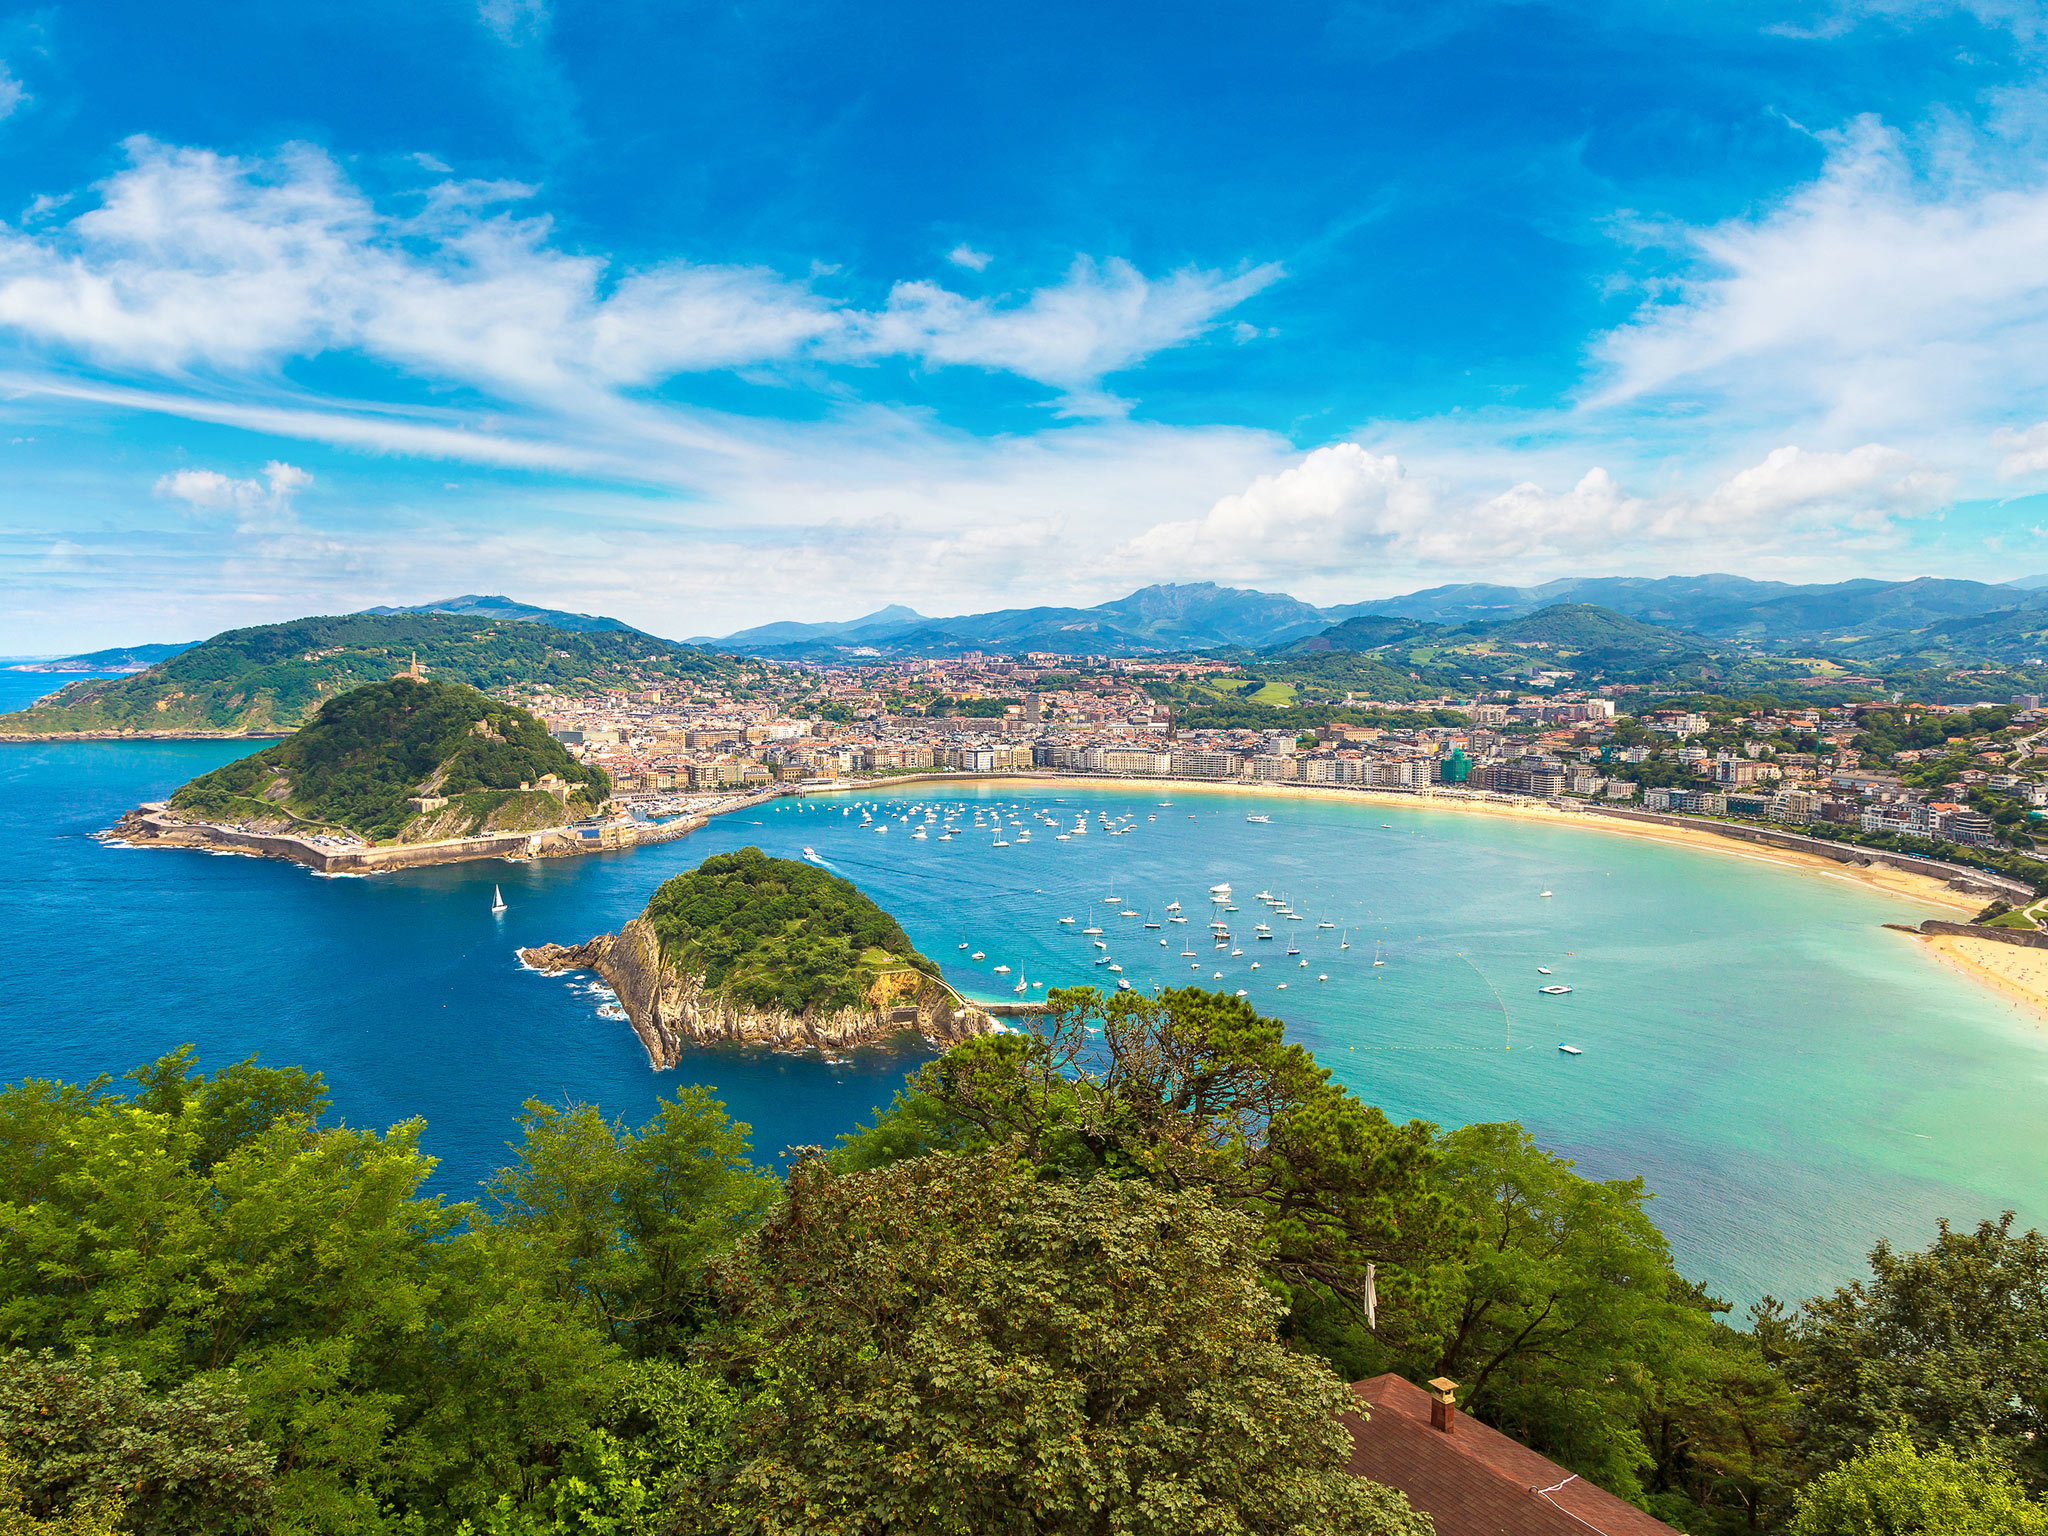 A view of San Sebastian on the Bay of Biscay